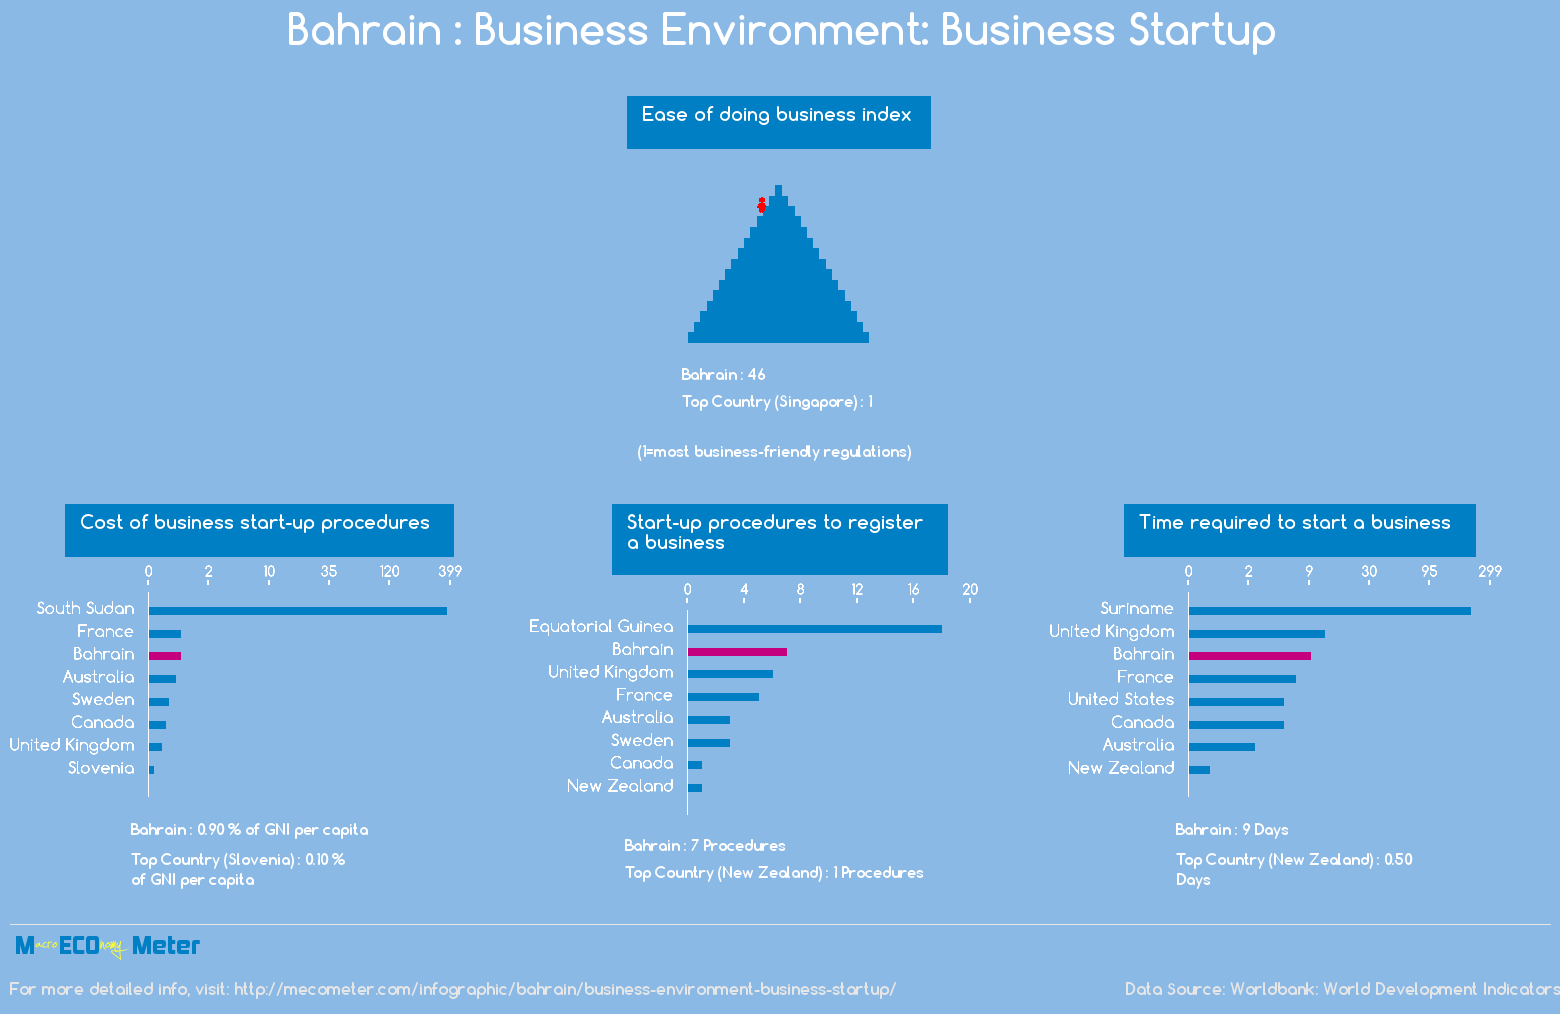 Bahrain : Business Environment: Business Startup